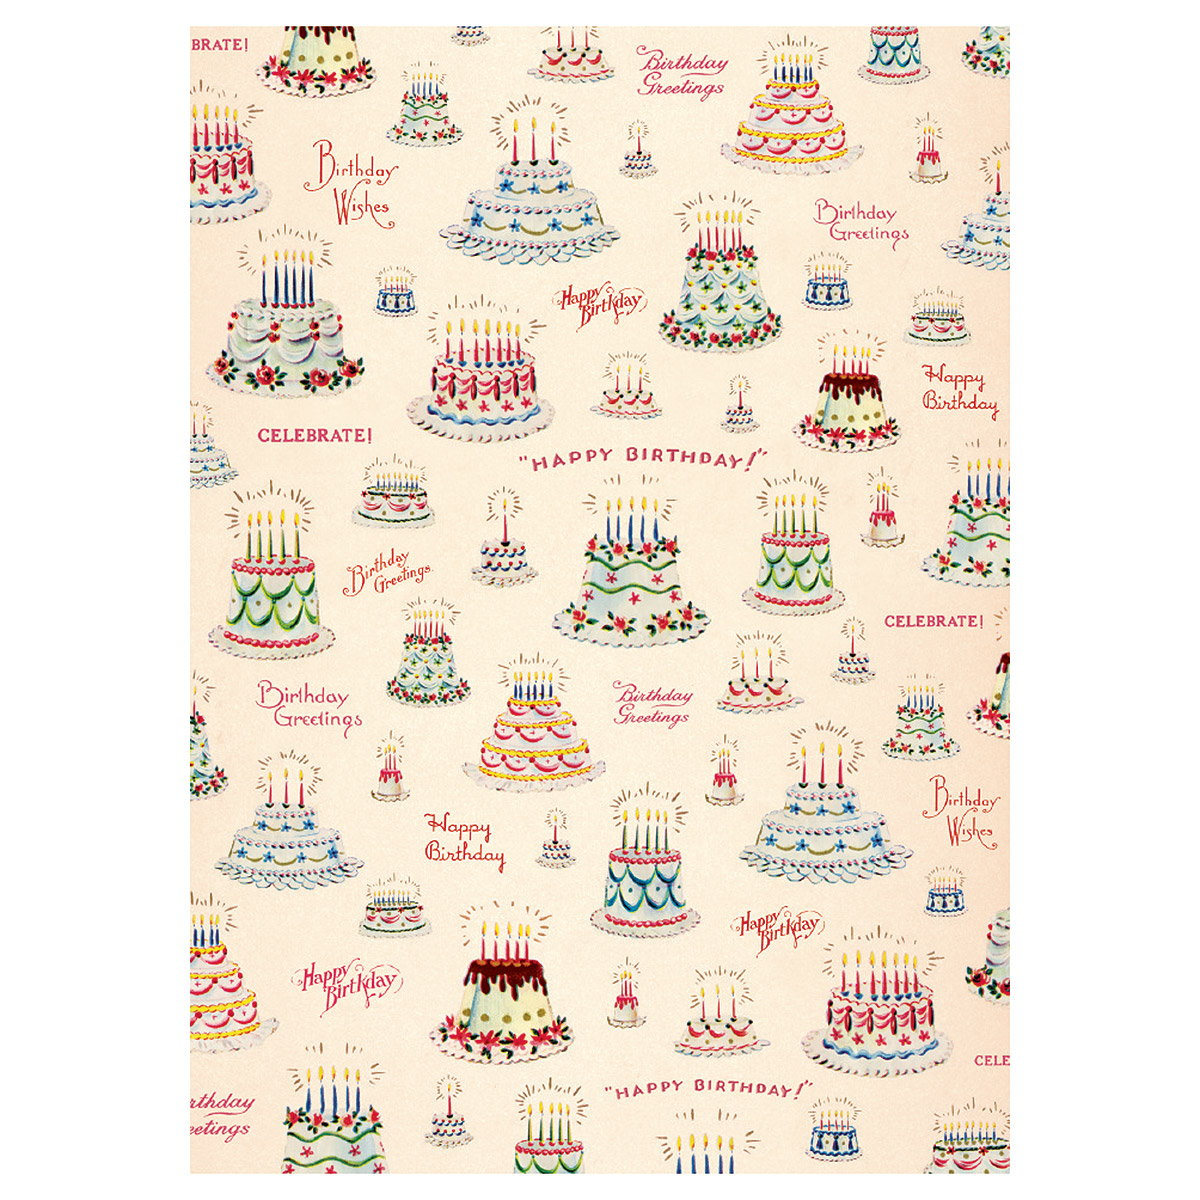 Happy Birthday Cakes Wrapping Paper Sheet Vintage Style